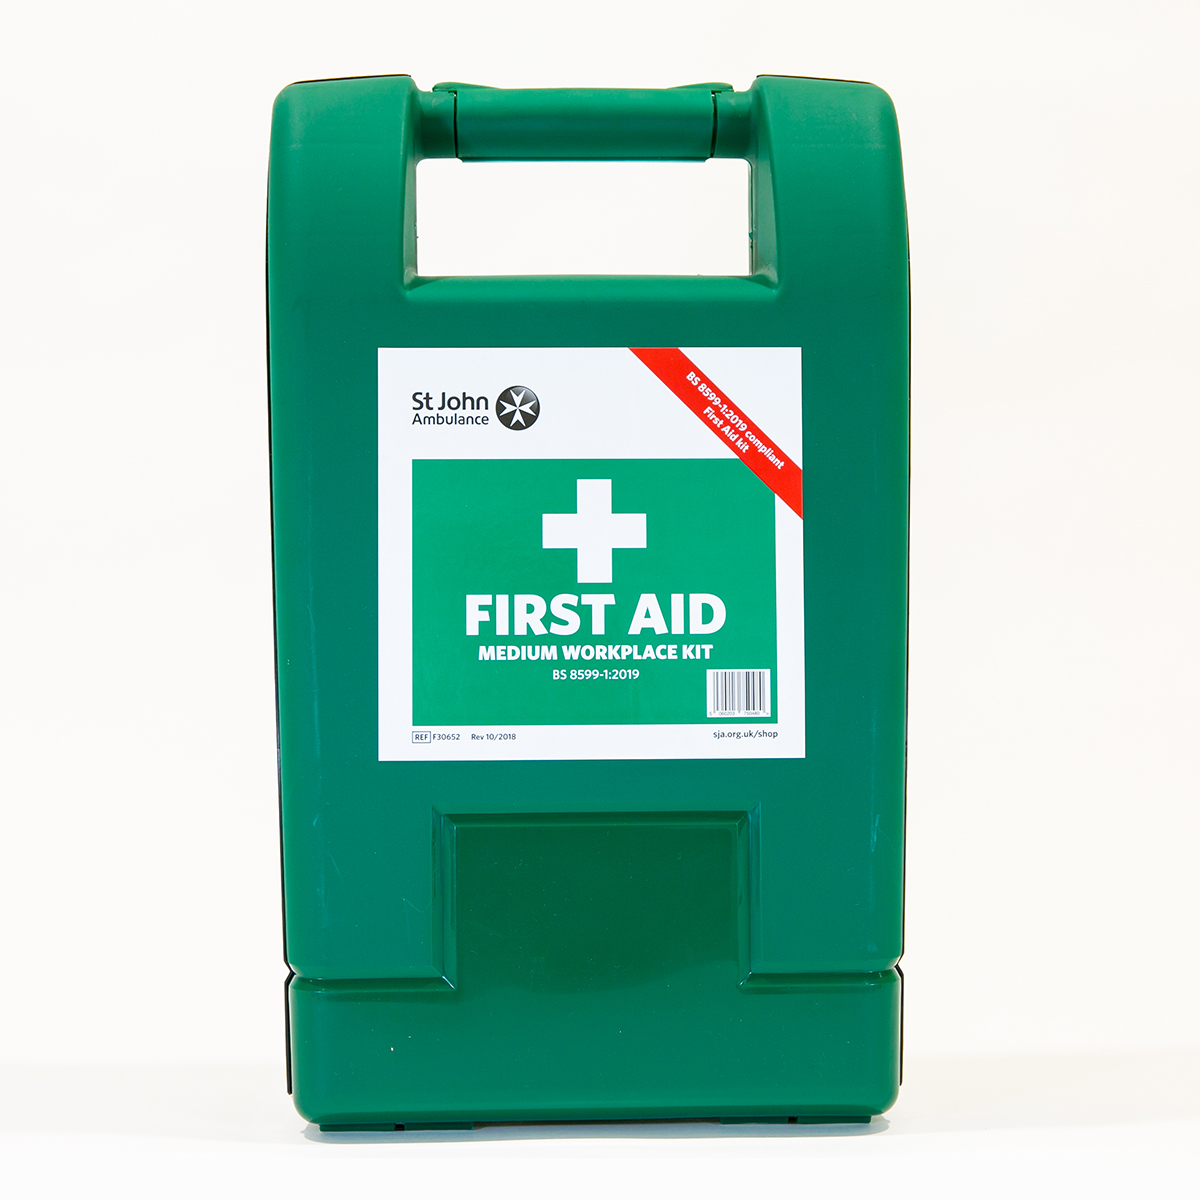 St John Ambulance Medium Alpha Workplace First Aid Kit BS 8599-1:2019